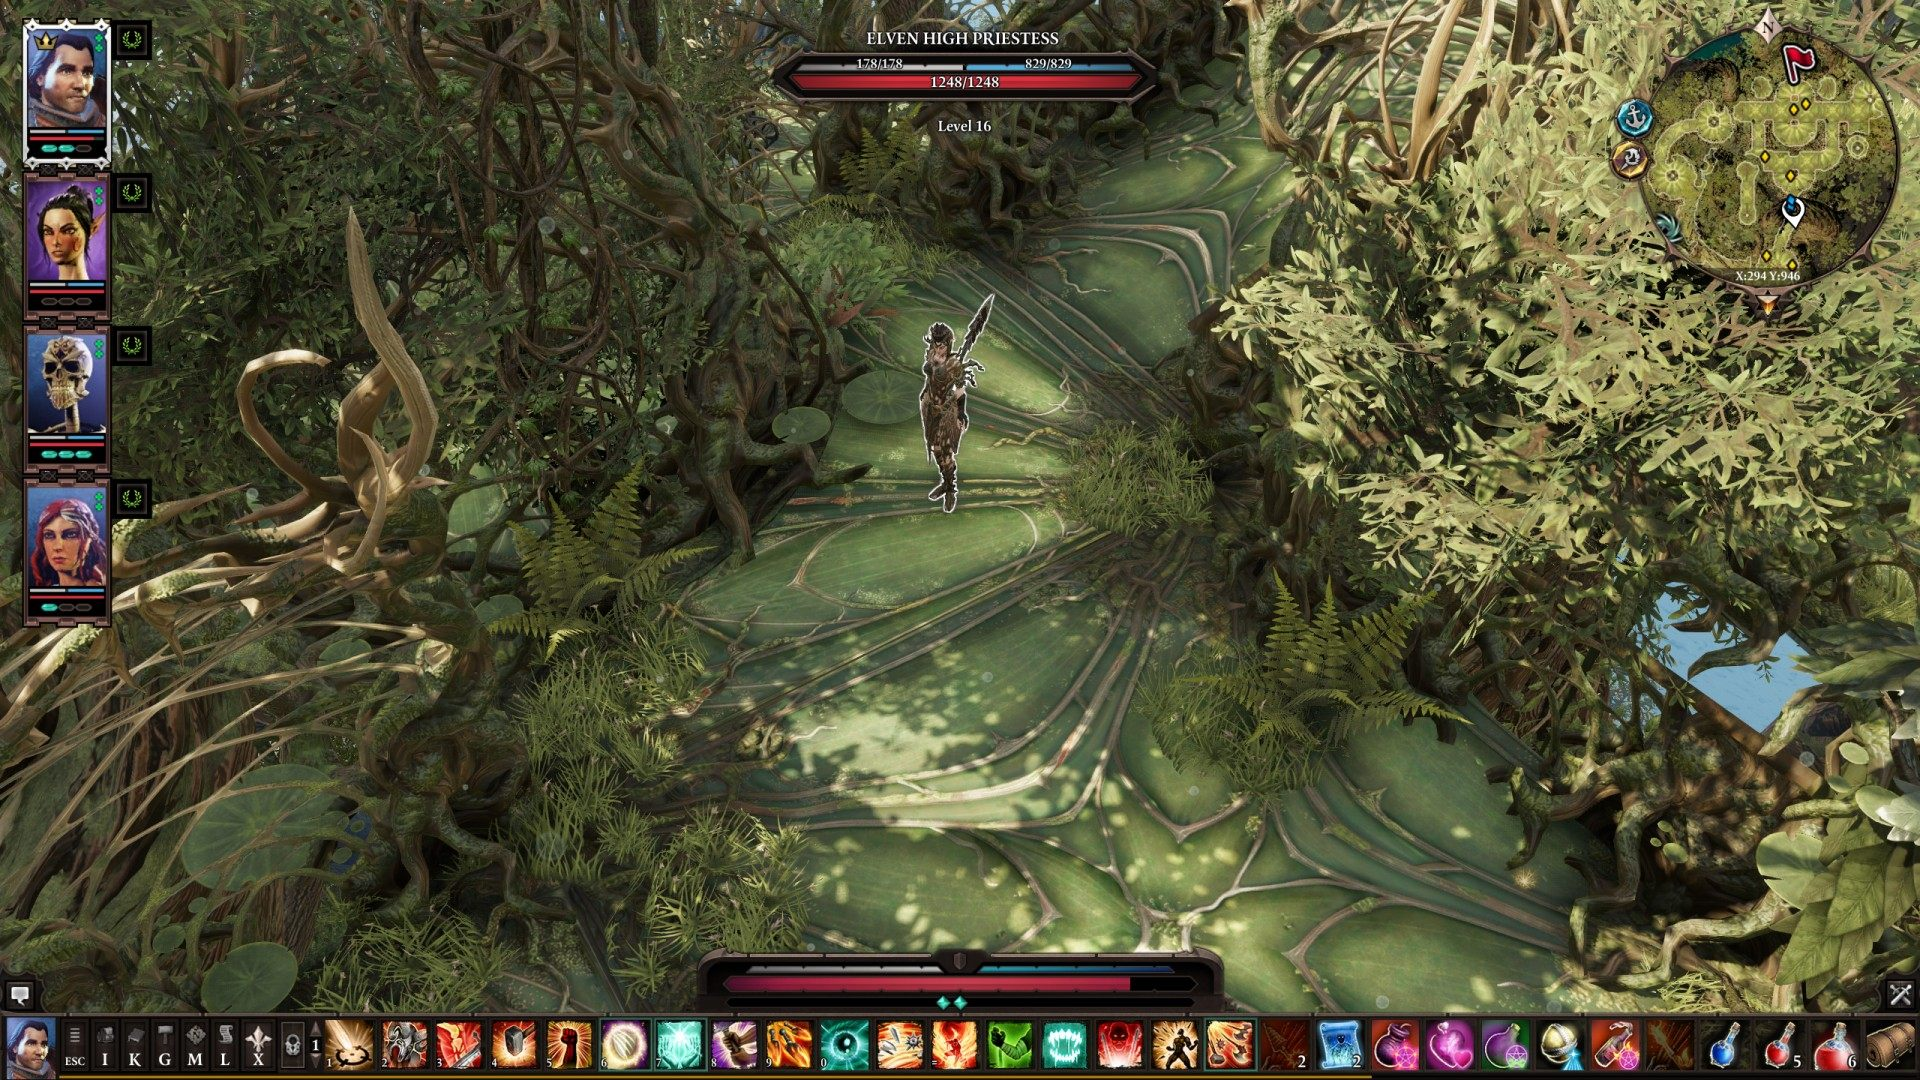 The Mother Tree, Divinity: Original Sin 2 Quest